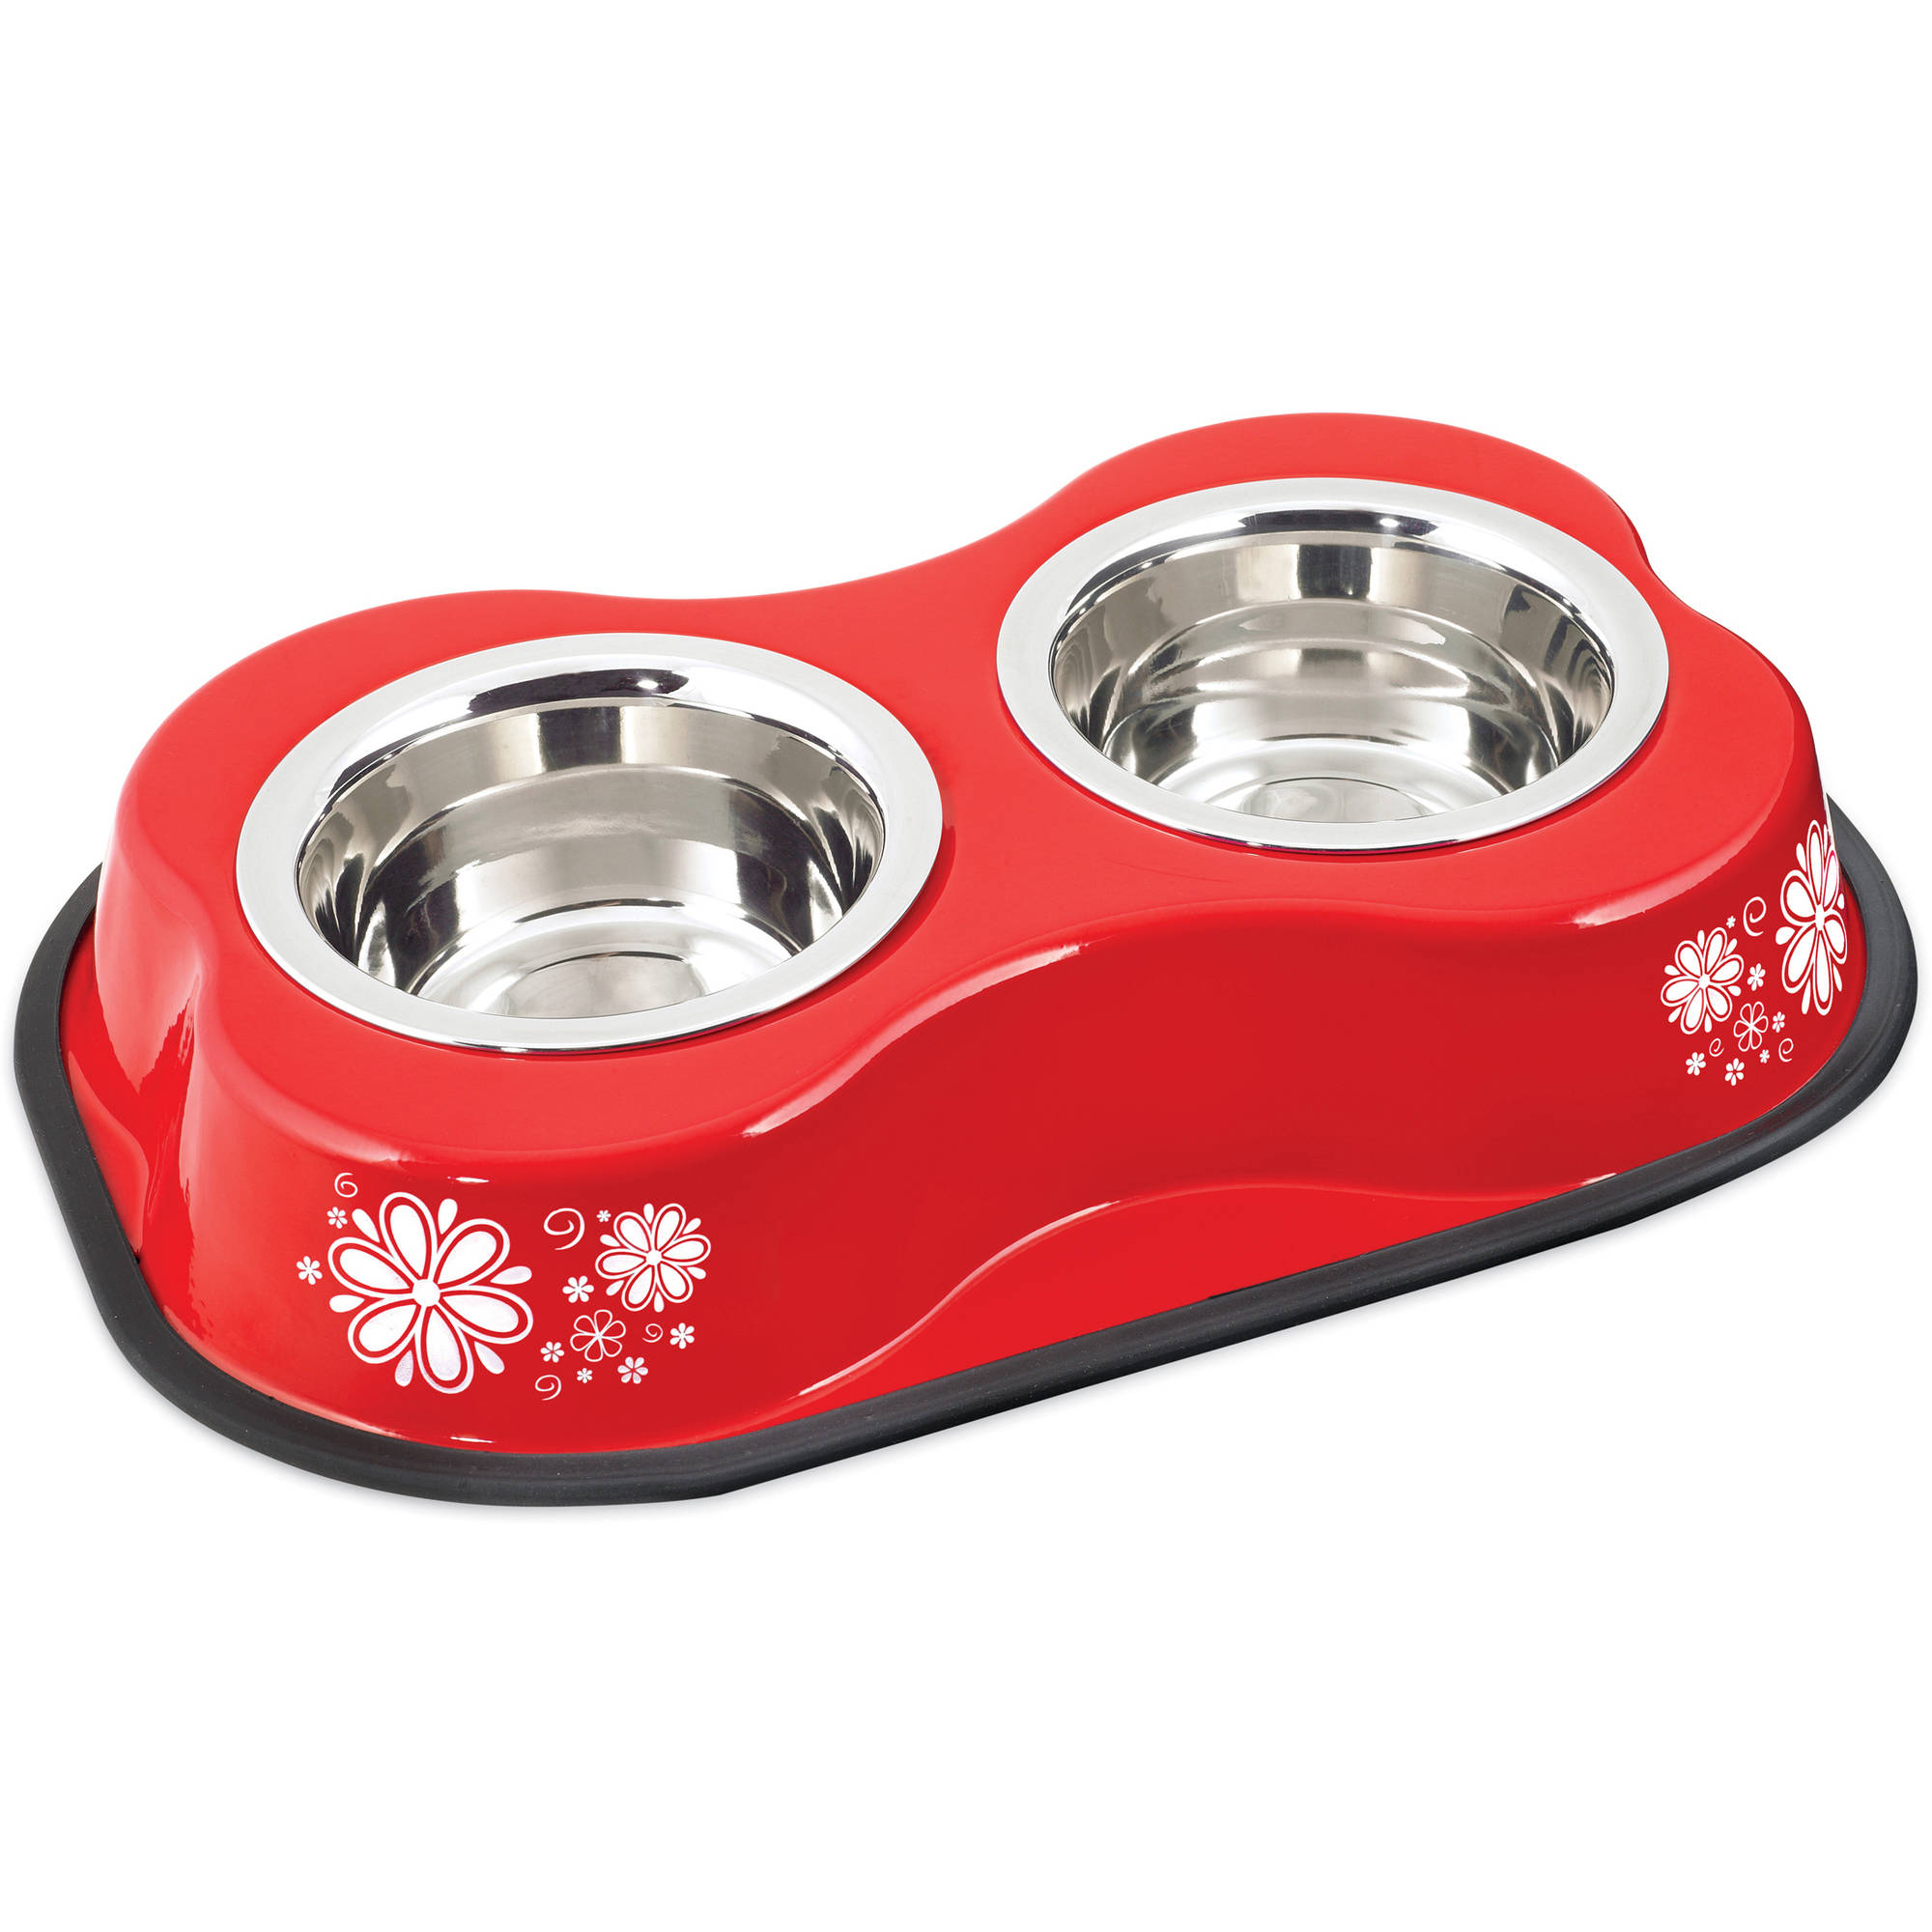 Bone Shaped Double Diner W/2 1pt Stainless Steel Bowls, Flower Pattern Red